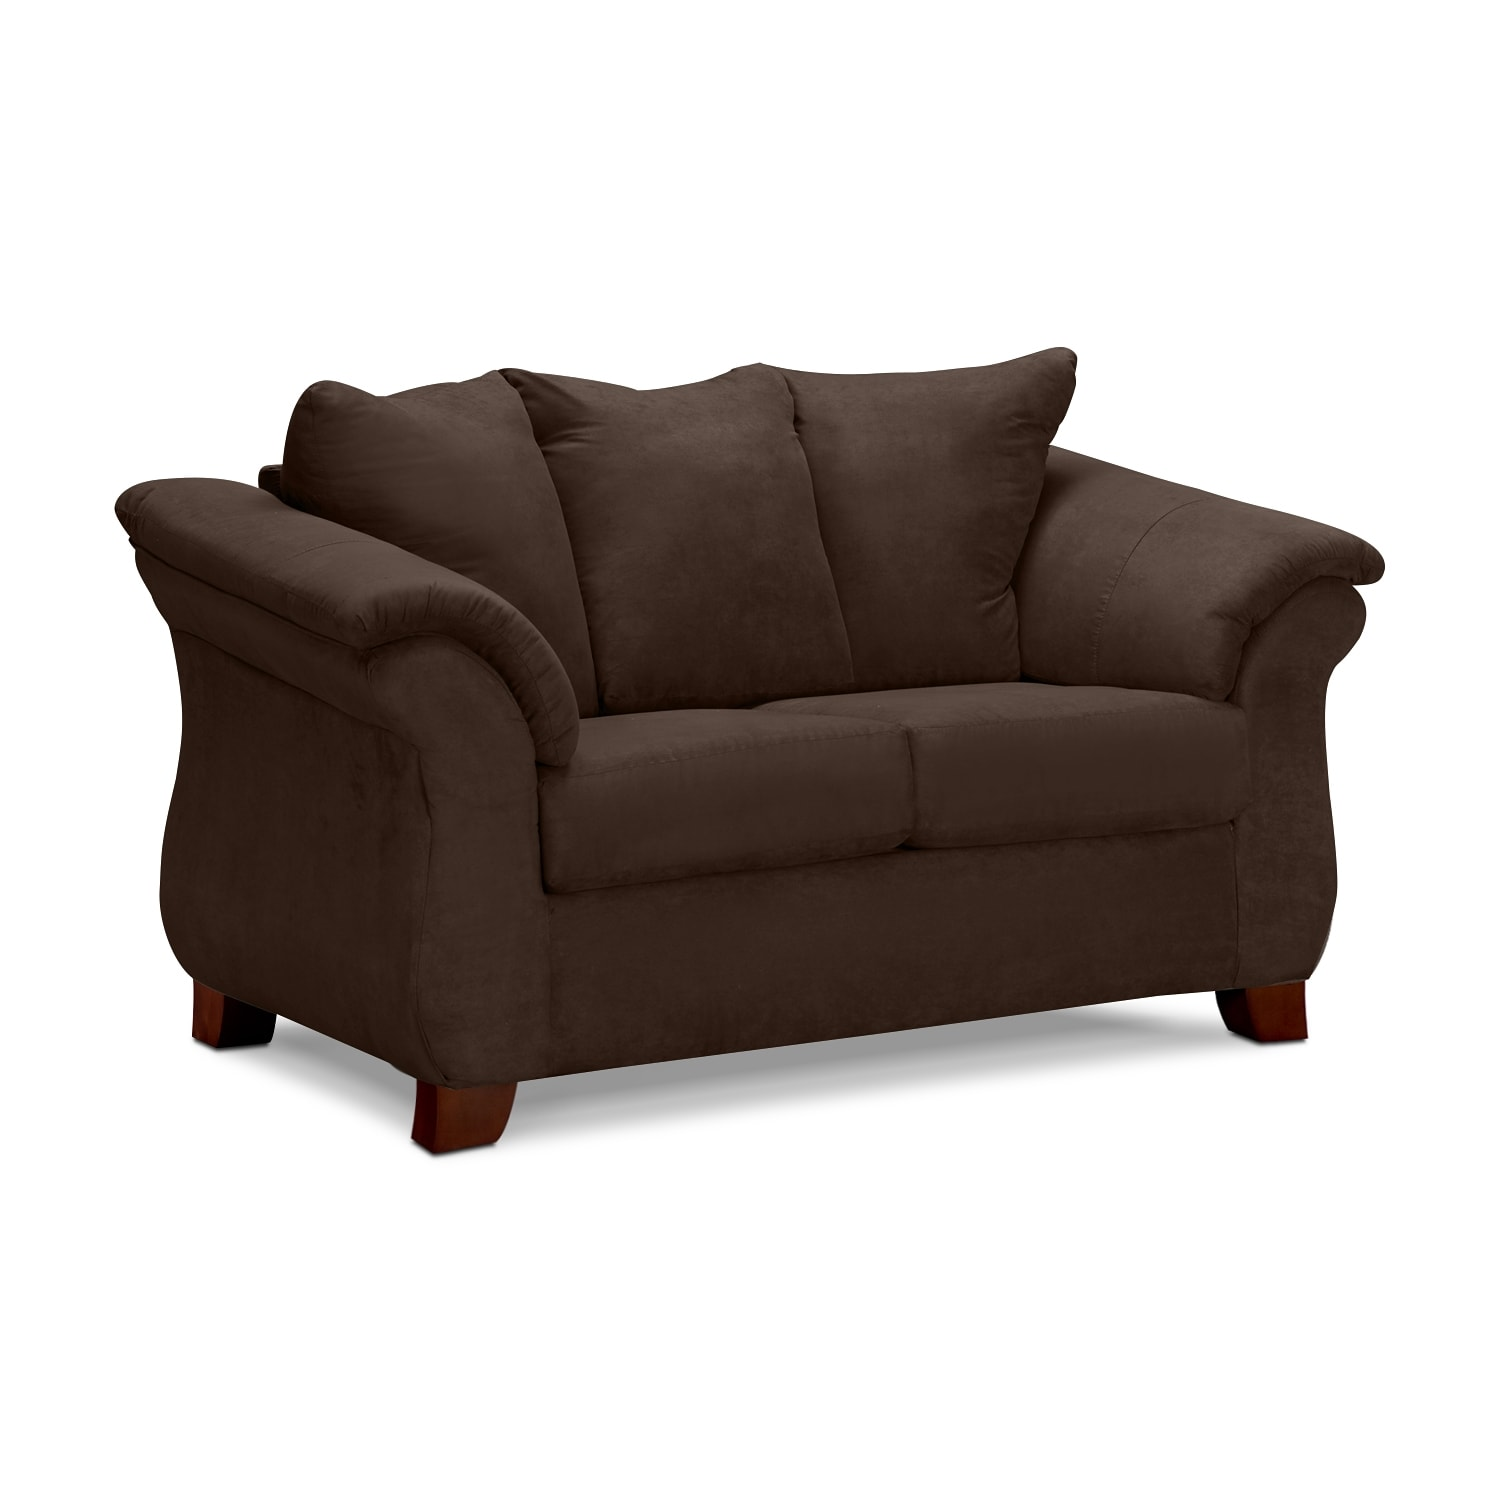 Adrian loveseat chocolate value city furniture for Com furniture